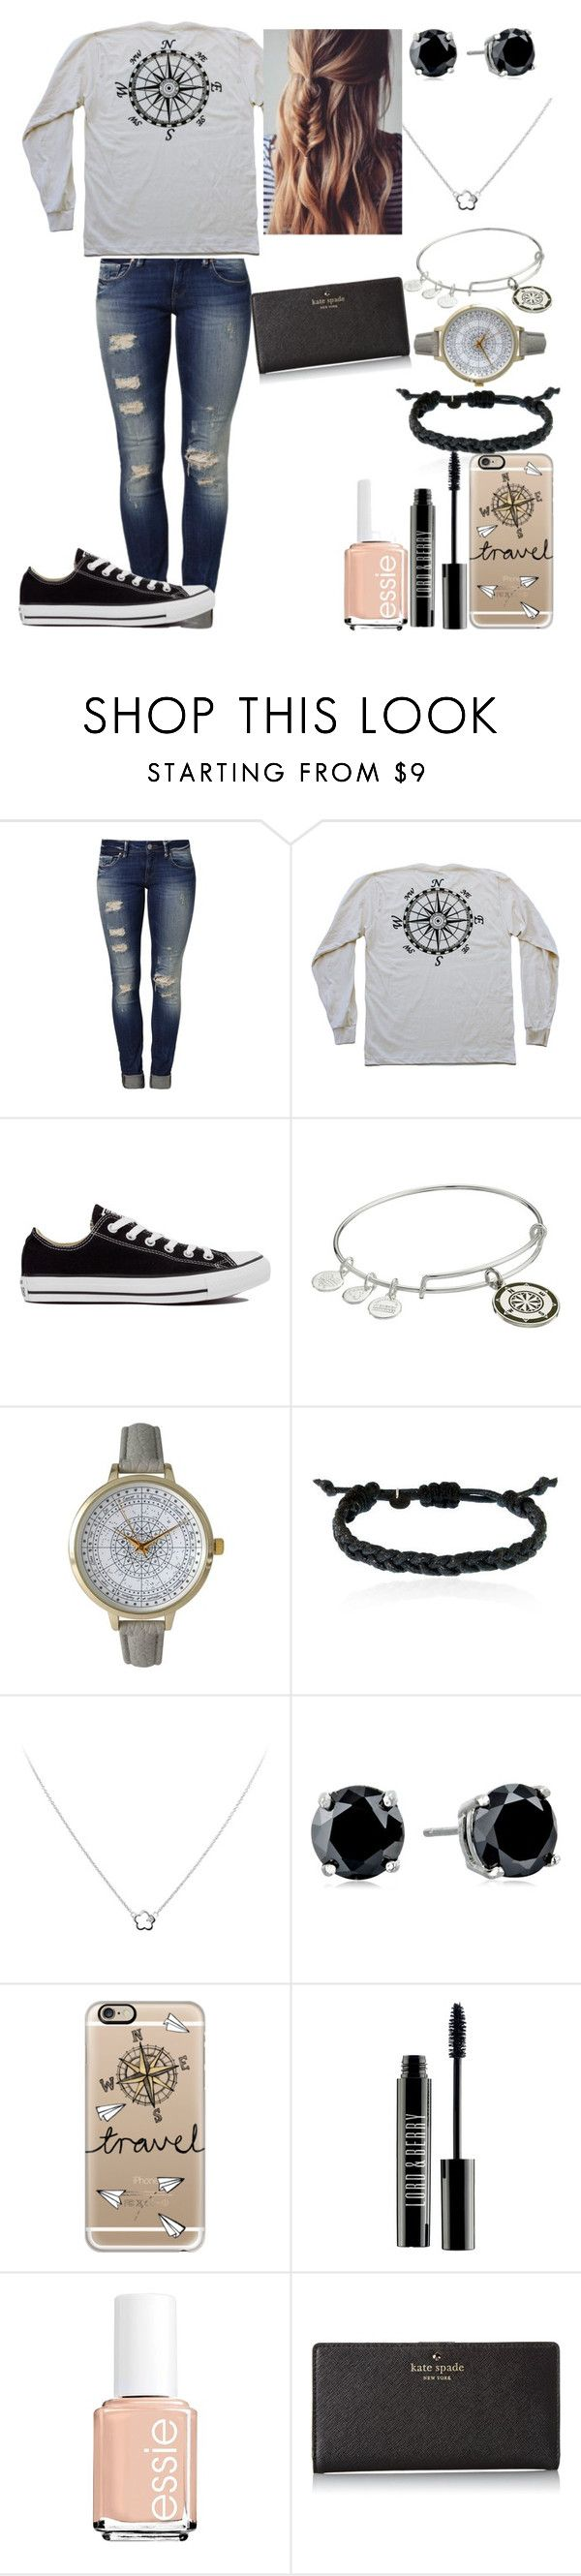 """""""Explorer"""" by the-kind-one ❤ liked on Polyvore featuring Mavi, Converse, Alex and Ani, Olivia Pratt, Domo Beads, Diamonfire, CZ by Kenneth Jay Lane, Casetify, Lord & Berry and Essie"""